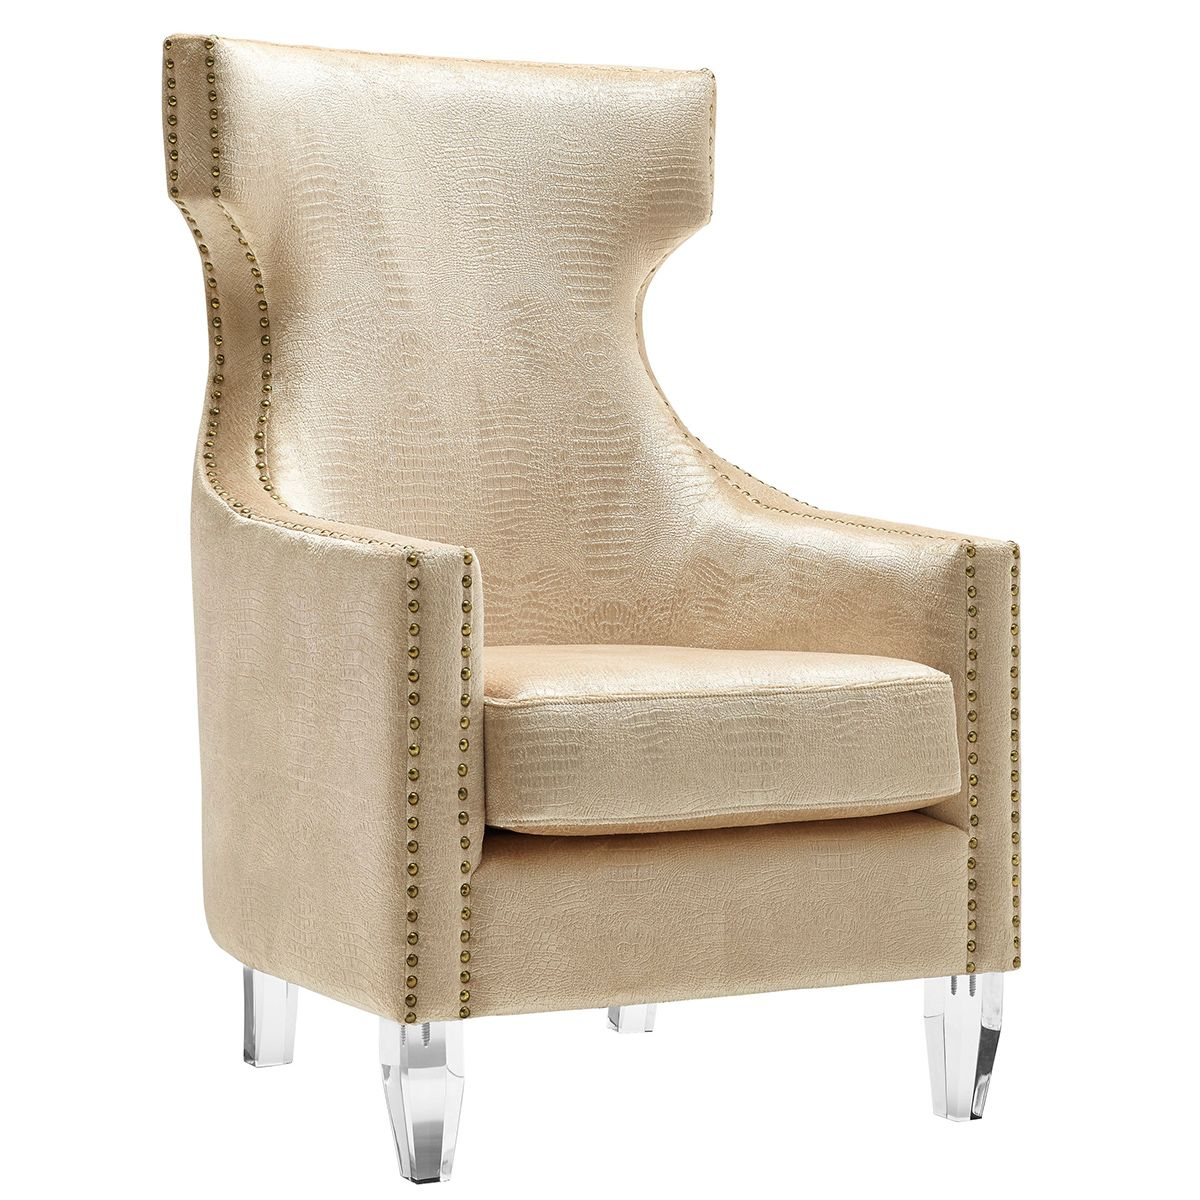 Comfortable arm chairs - Tov Gramercy Croc Velvet Wing Arm Chair Gold